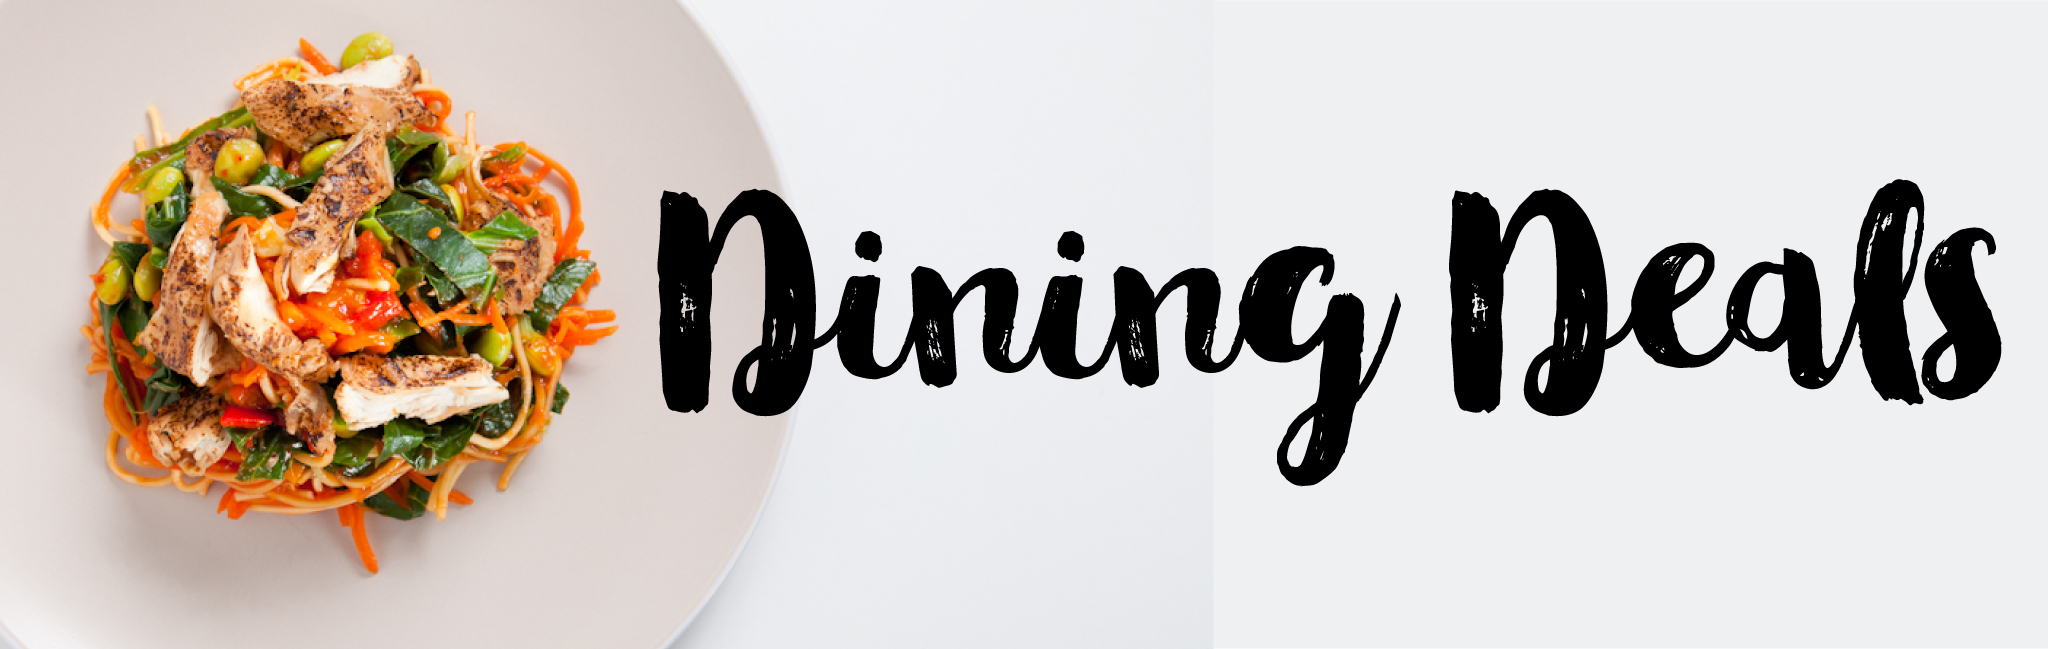 mhs16_diningdeals_header